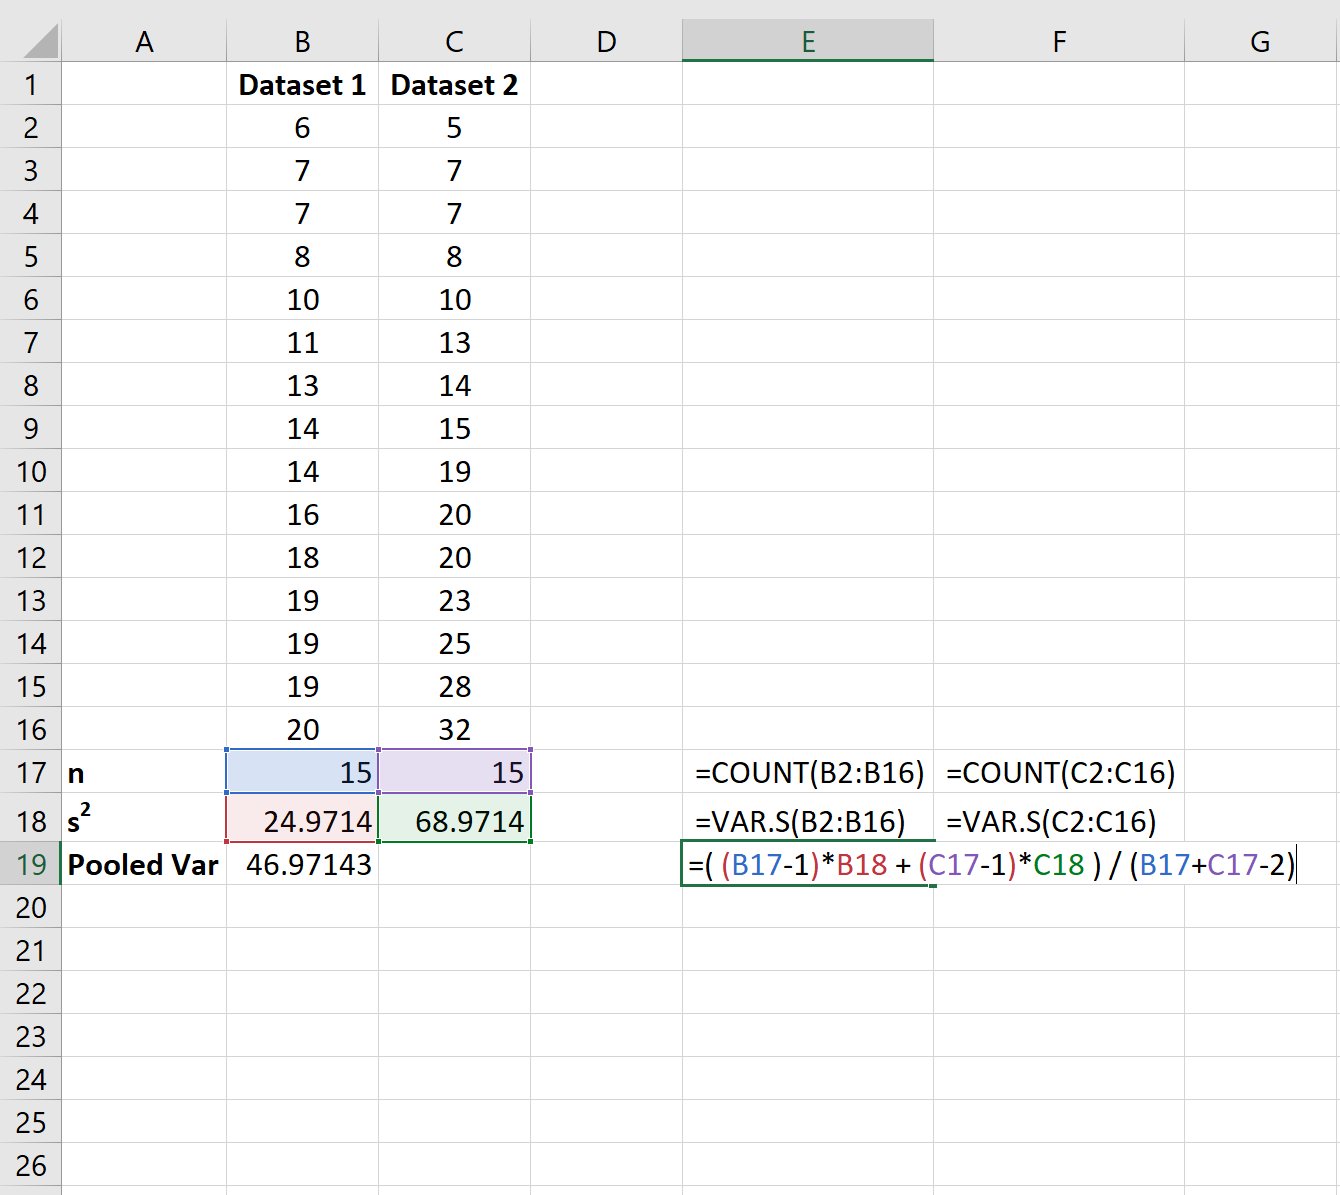 Pooled variance in Excel